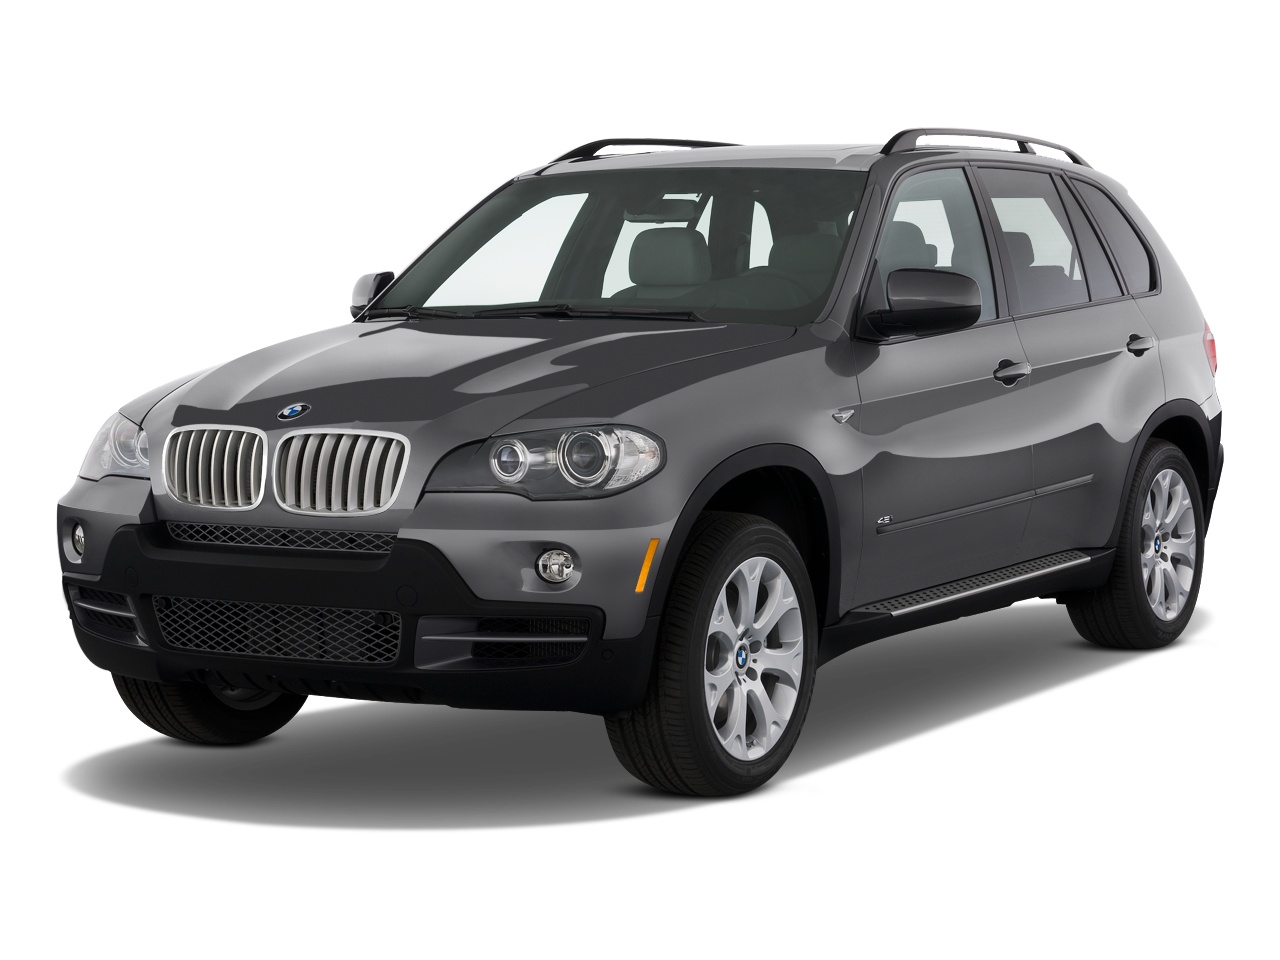 2009 bmw x5 xdrive35d bmw luxury crossover suv review automobile magazine. Black Bedroom Furniture Sets. Home Design Ideas